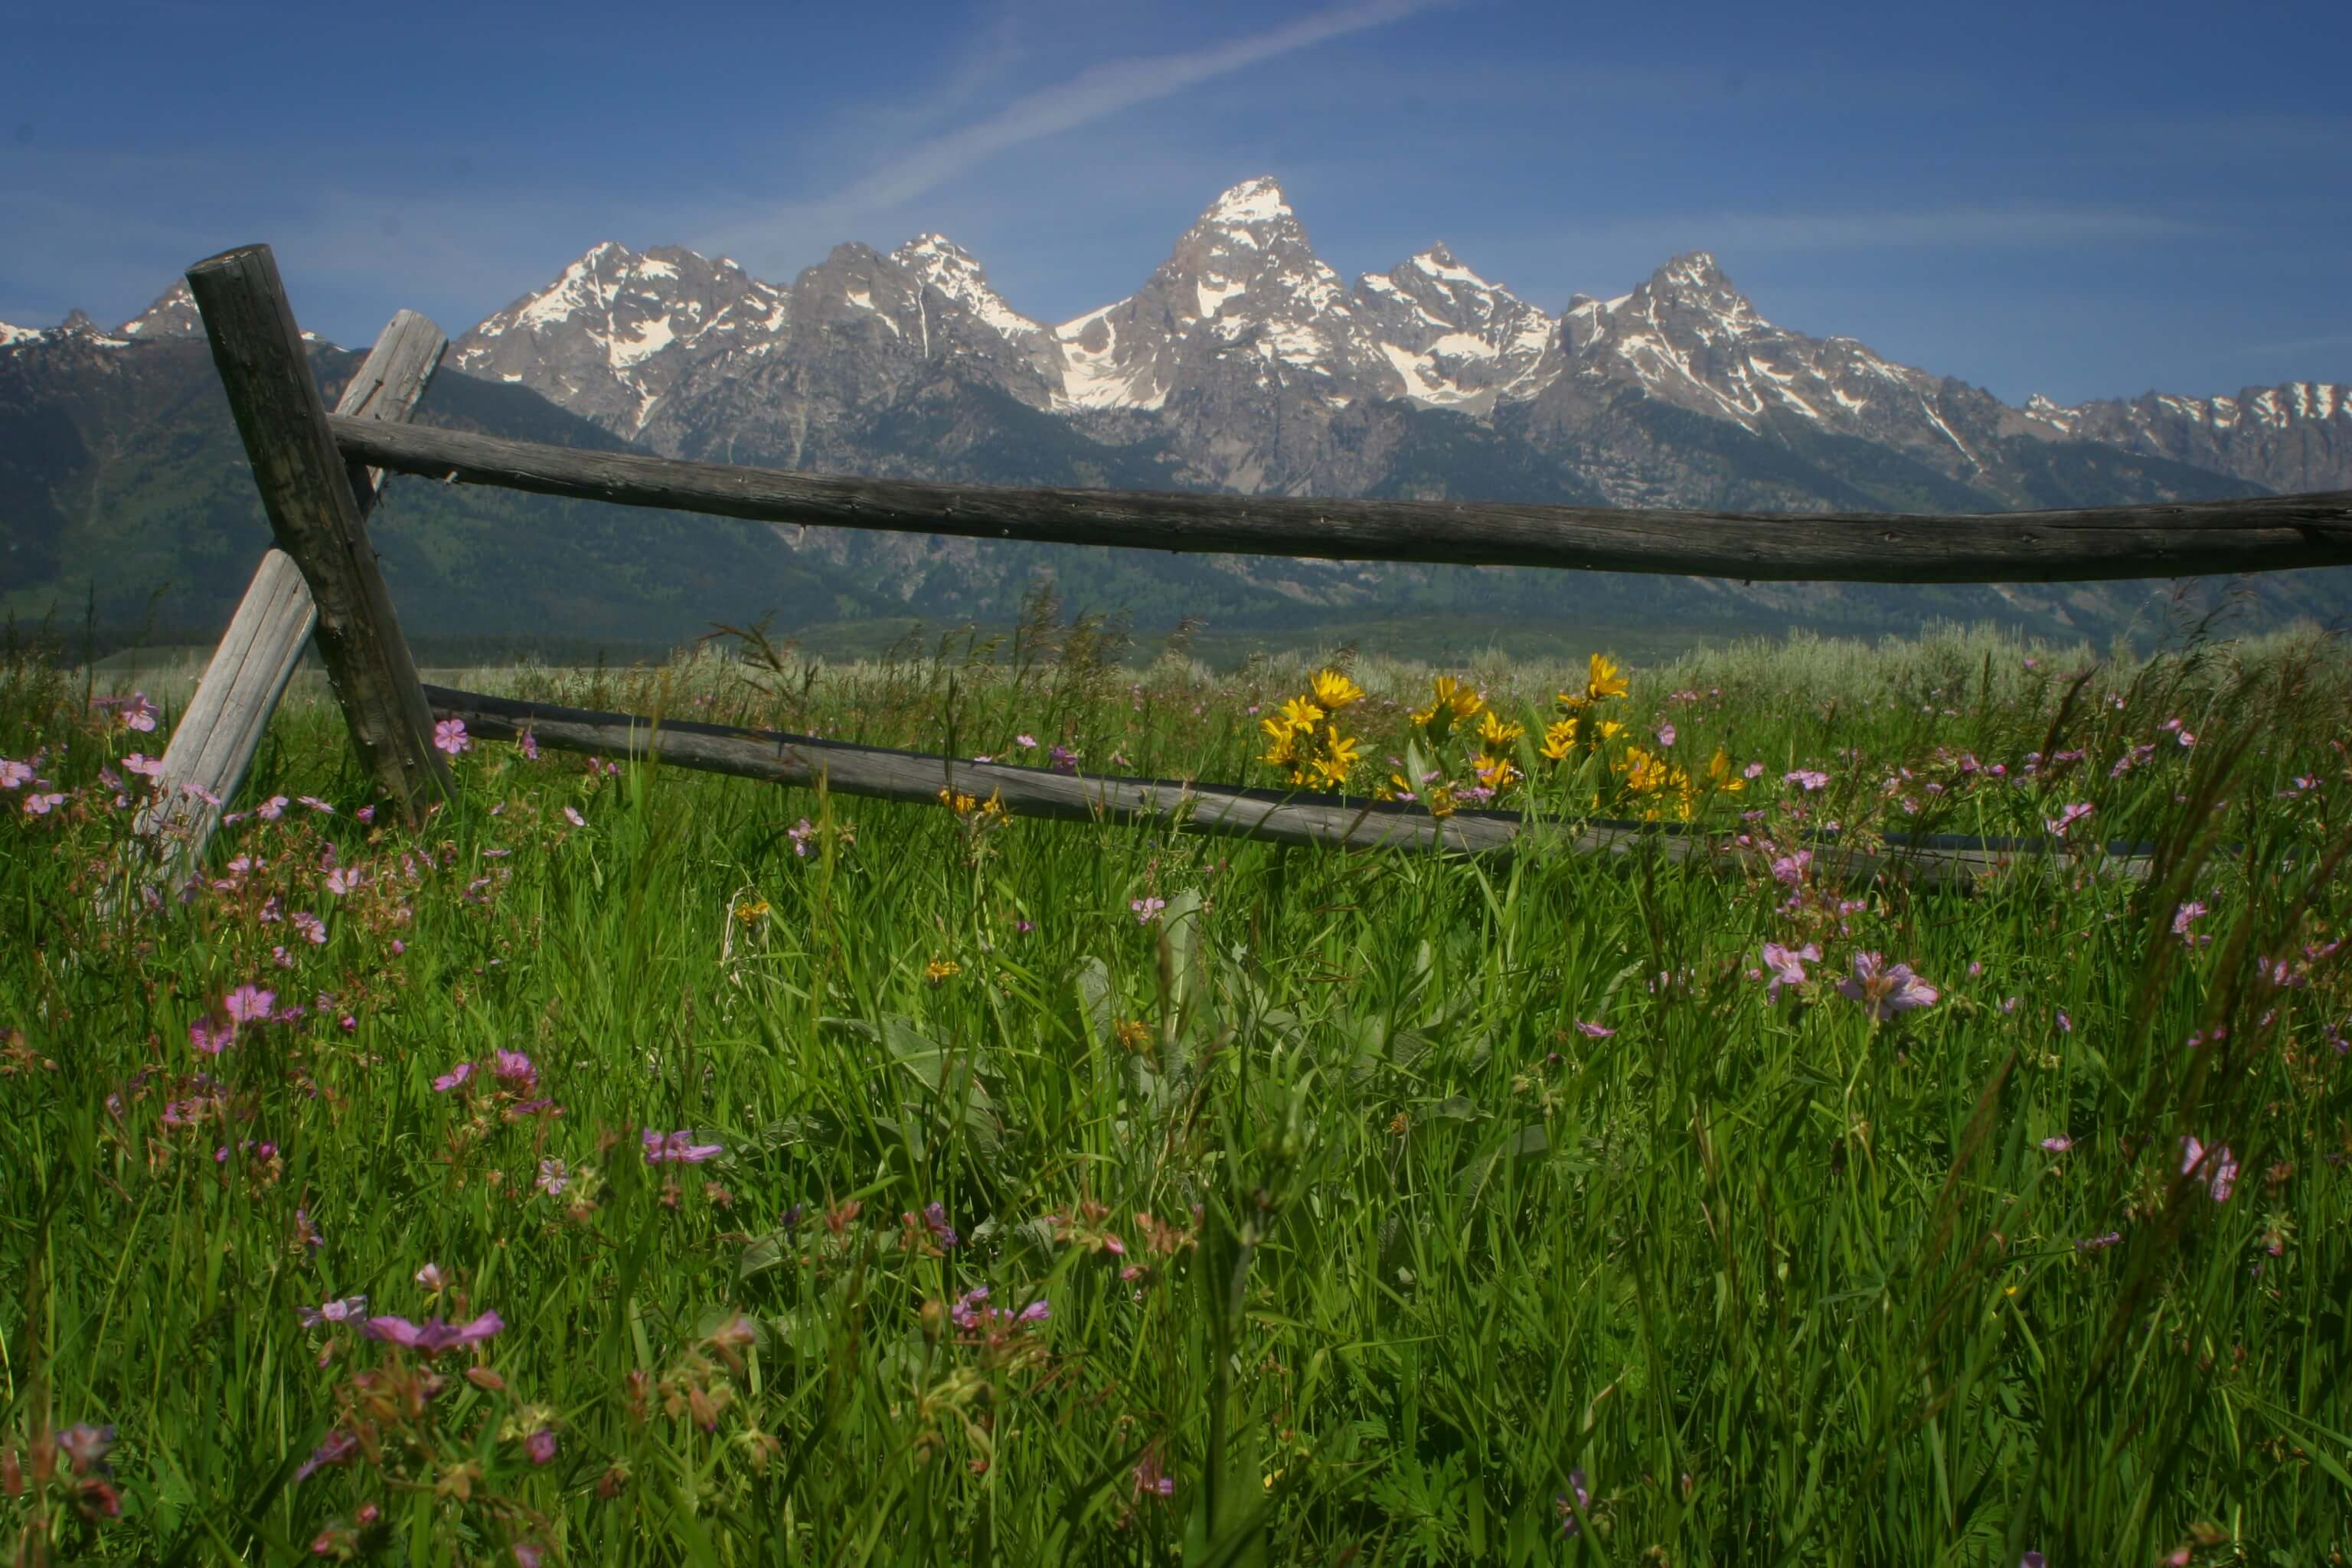 Allinclusive And National Park VacationsJackson Hole Has It All - National park vacations